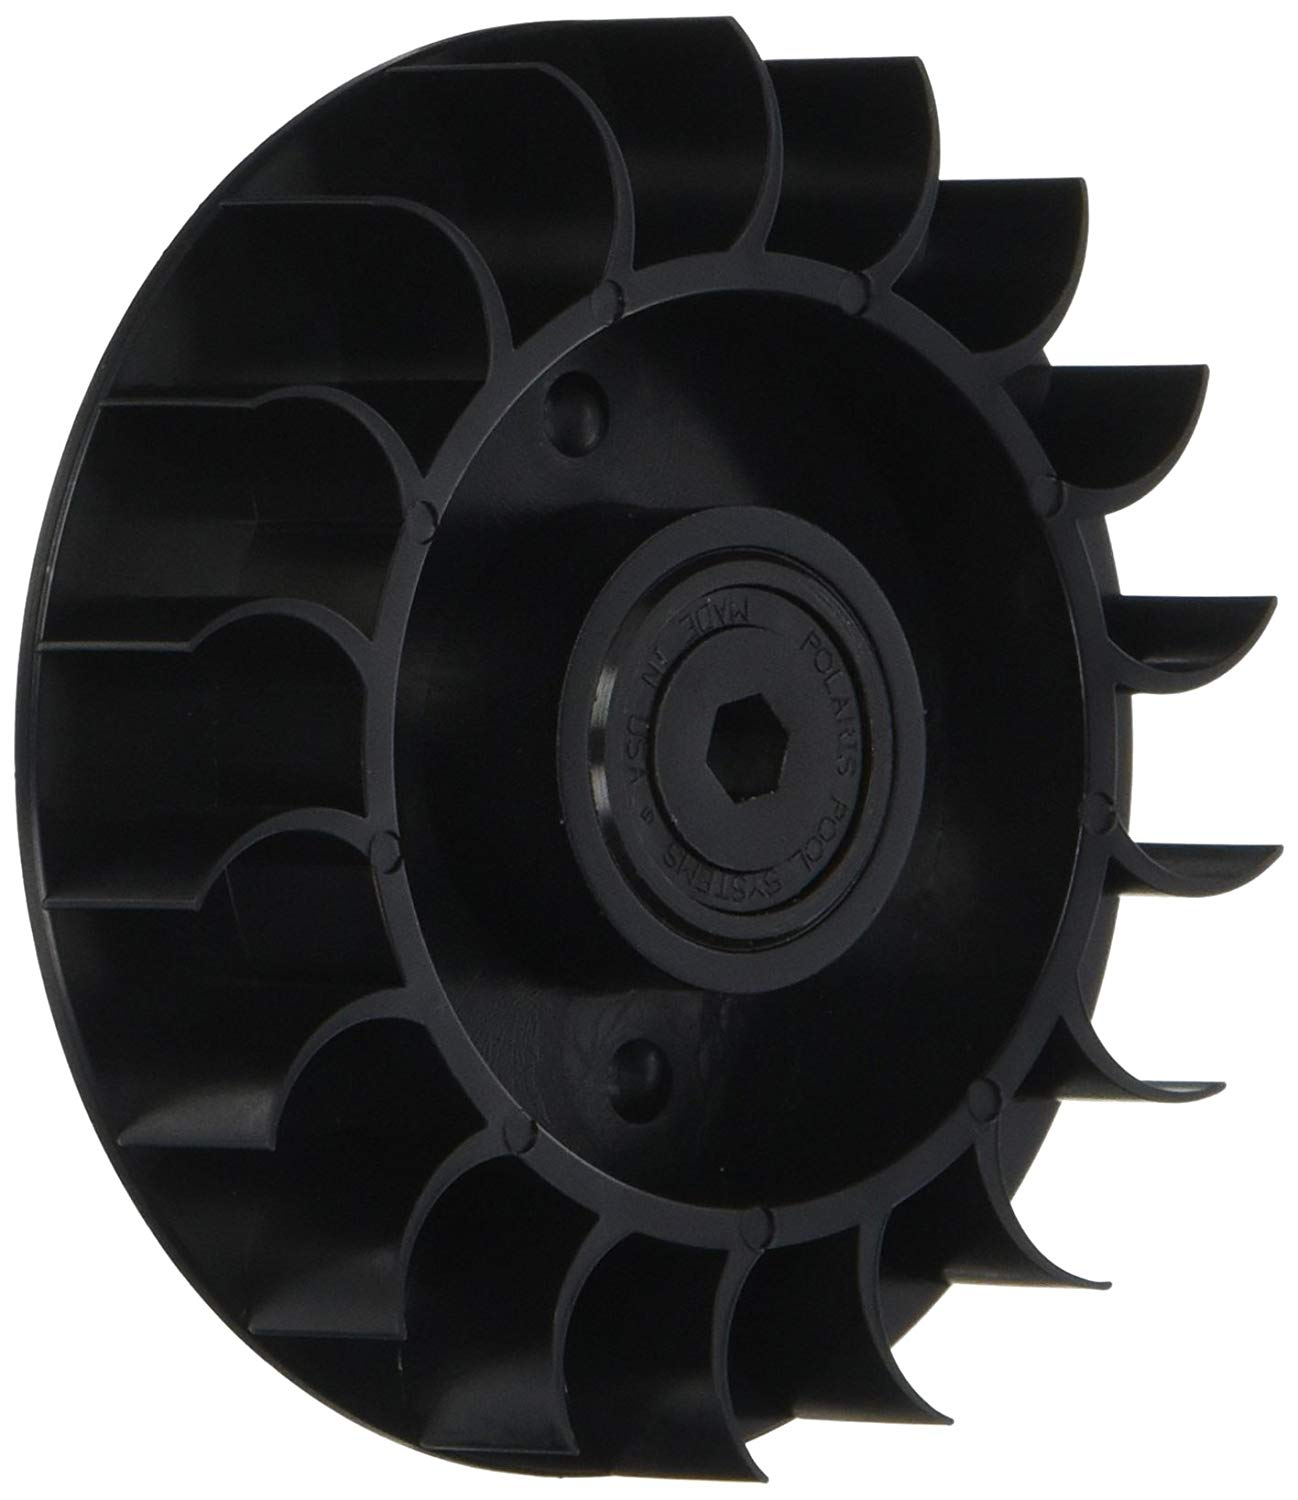 Polaris 380/360 Turbine Wheel Assembly